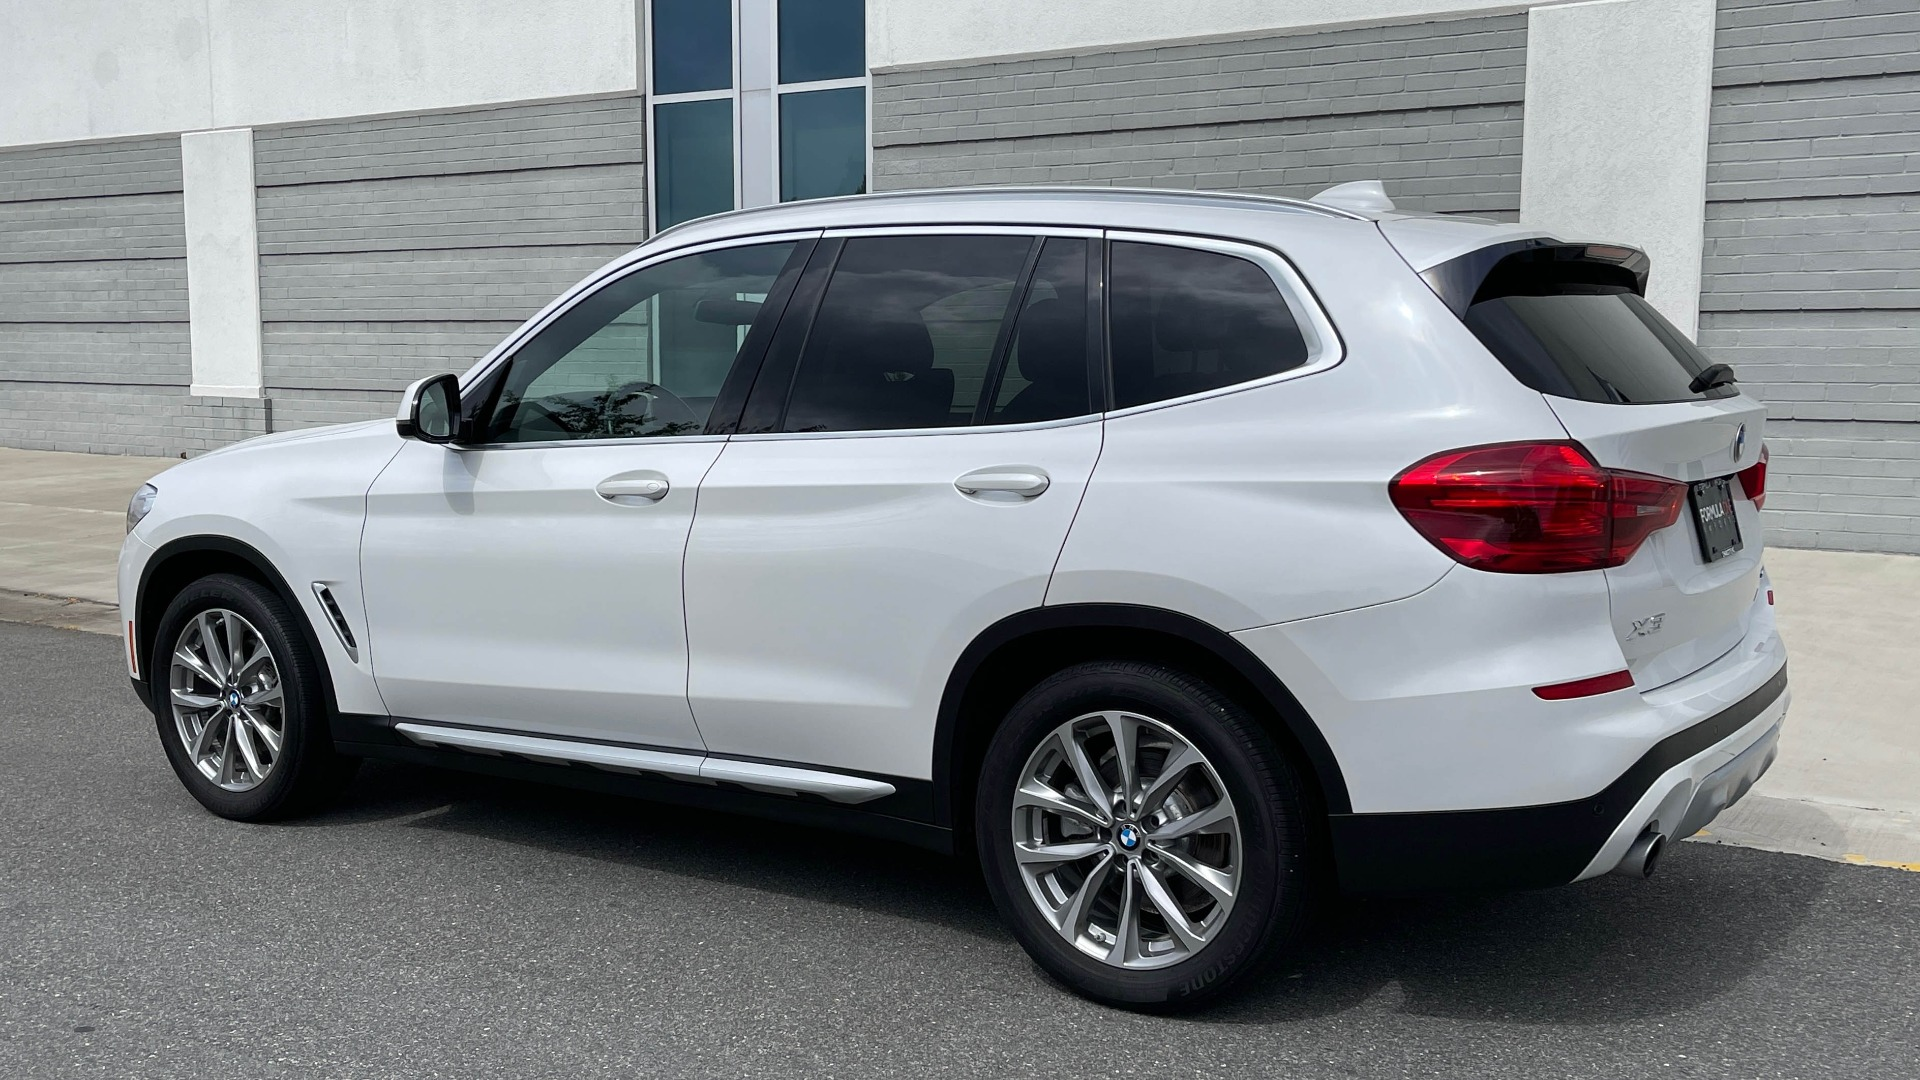 Used 2018 BMW X3 XDRIVE30I / NAV / PANO-ROOF / HTD STS / PARK DIST CNTRL / REARVIEW for sale $38,995 at Formula Imports in Charlotte NC 28227 4